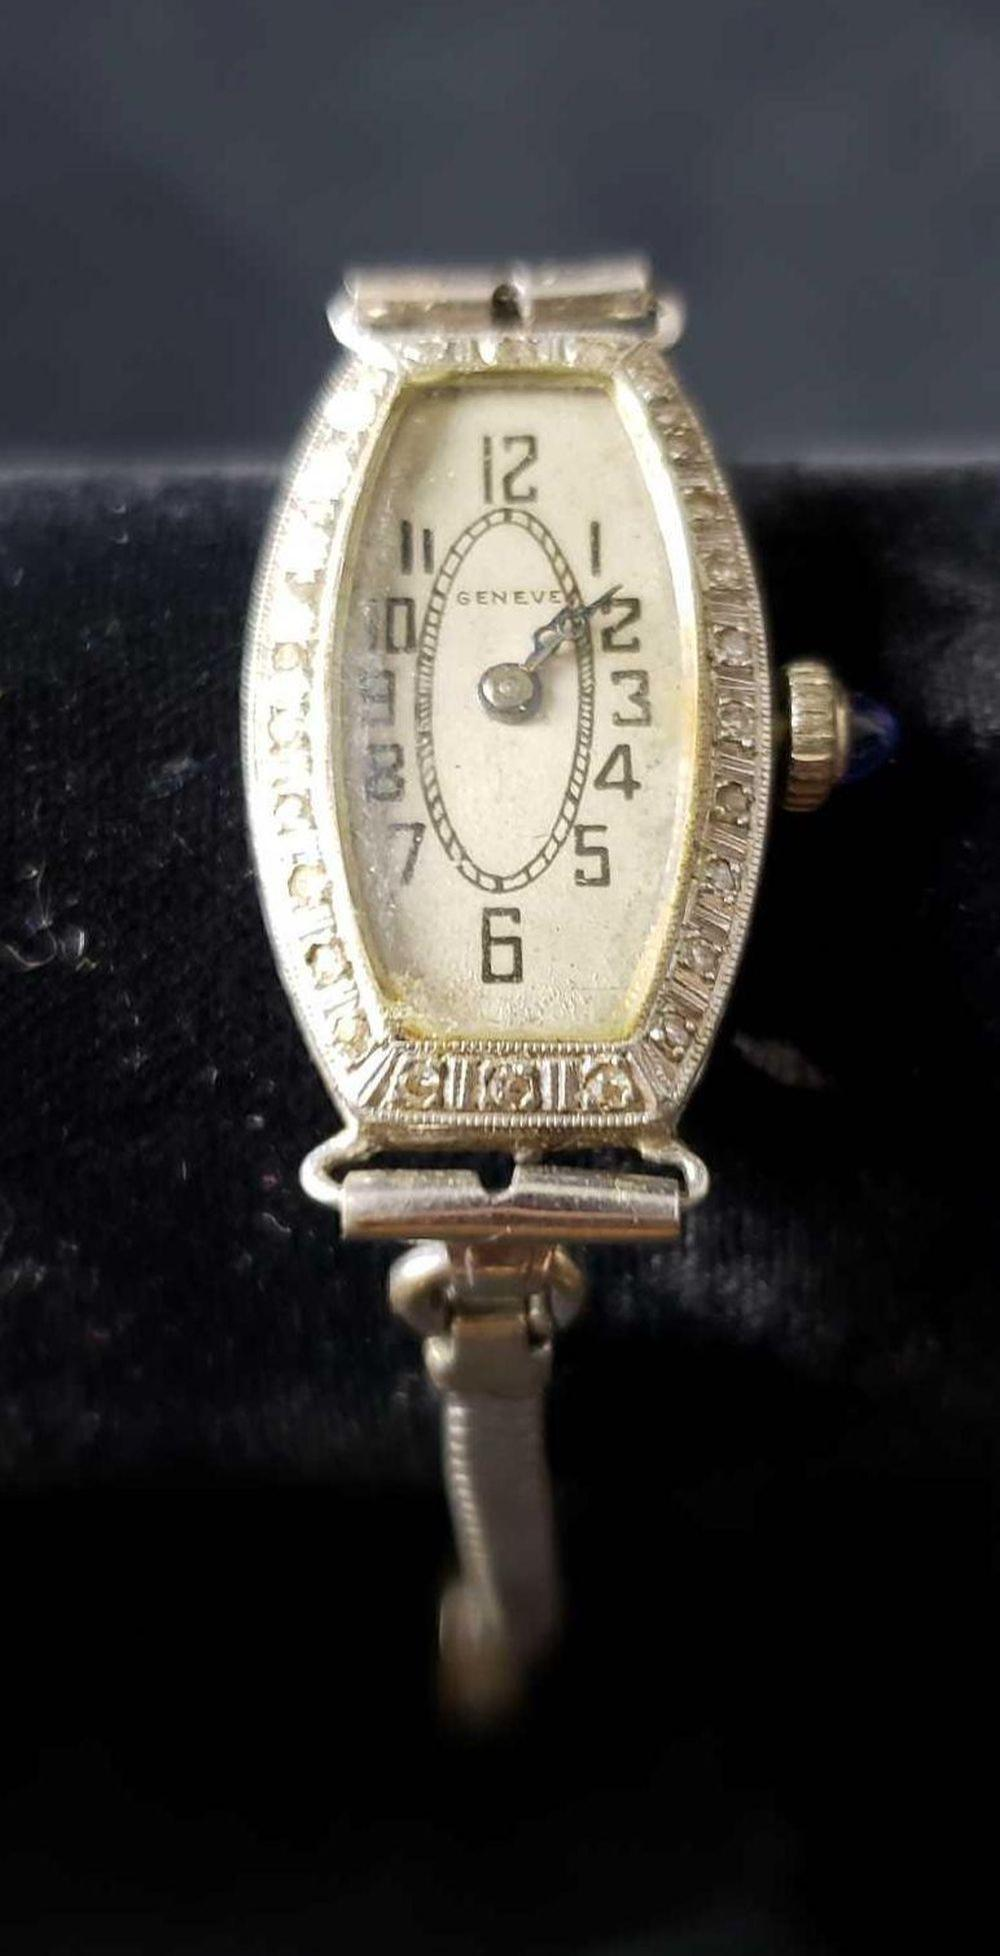 Lot 186: Geneve Watch with 14k Gold Case